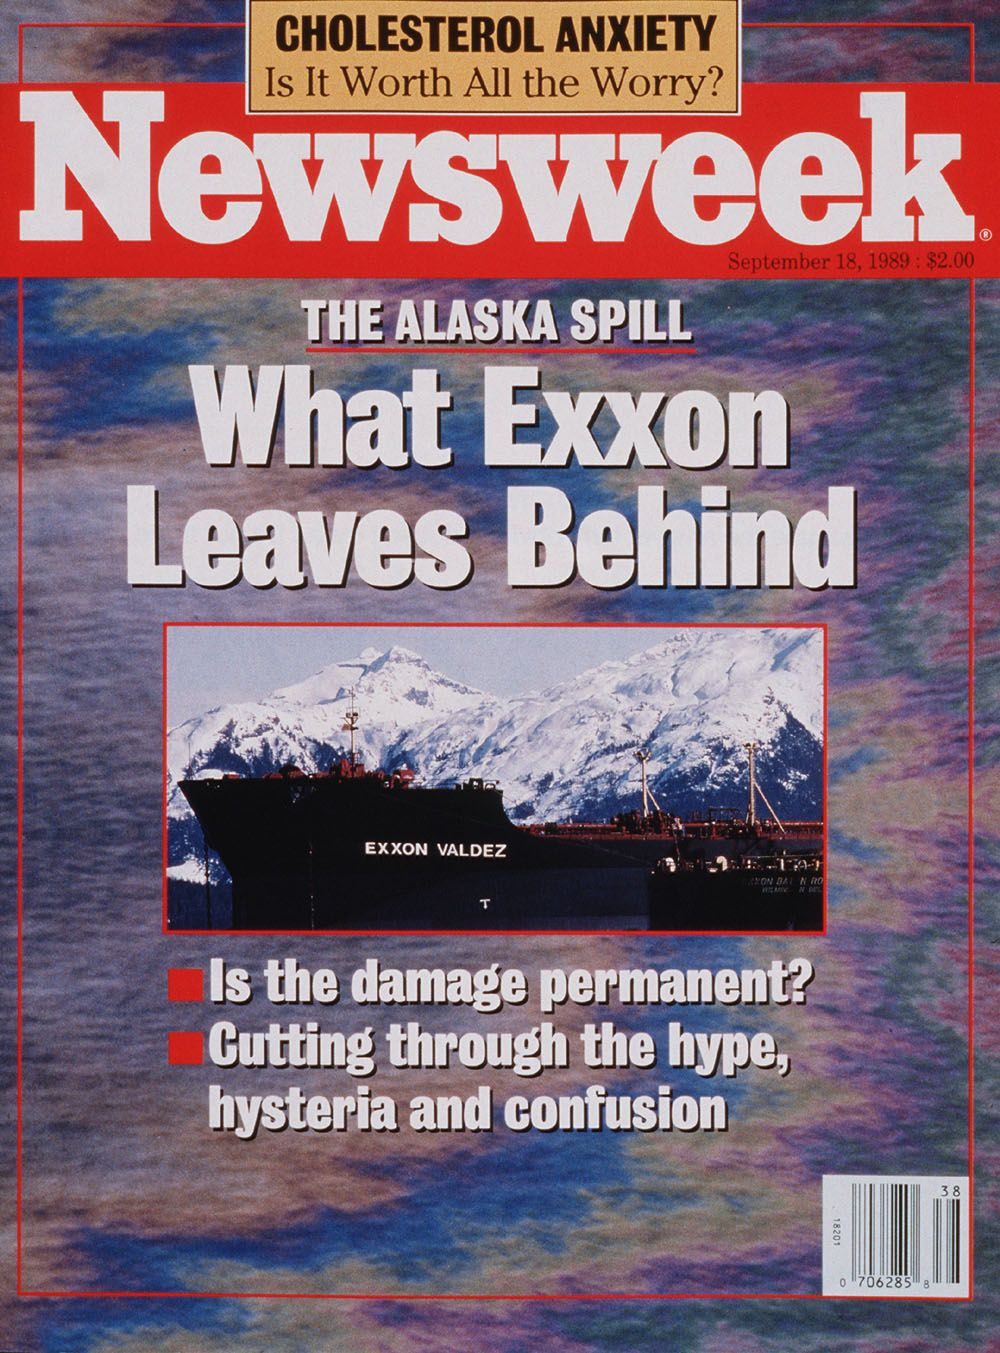 exxon valdez and tylenol reflection paper